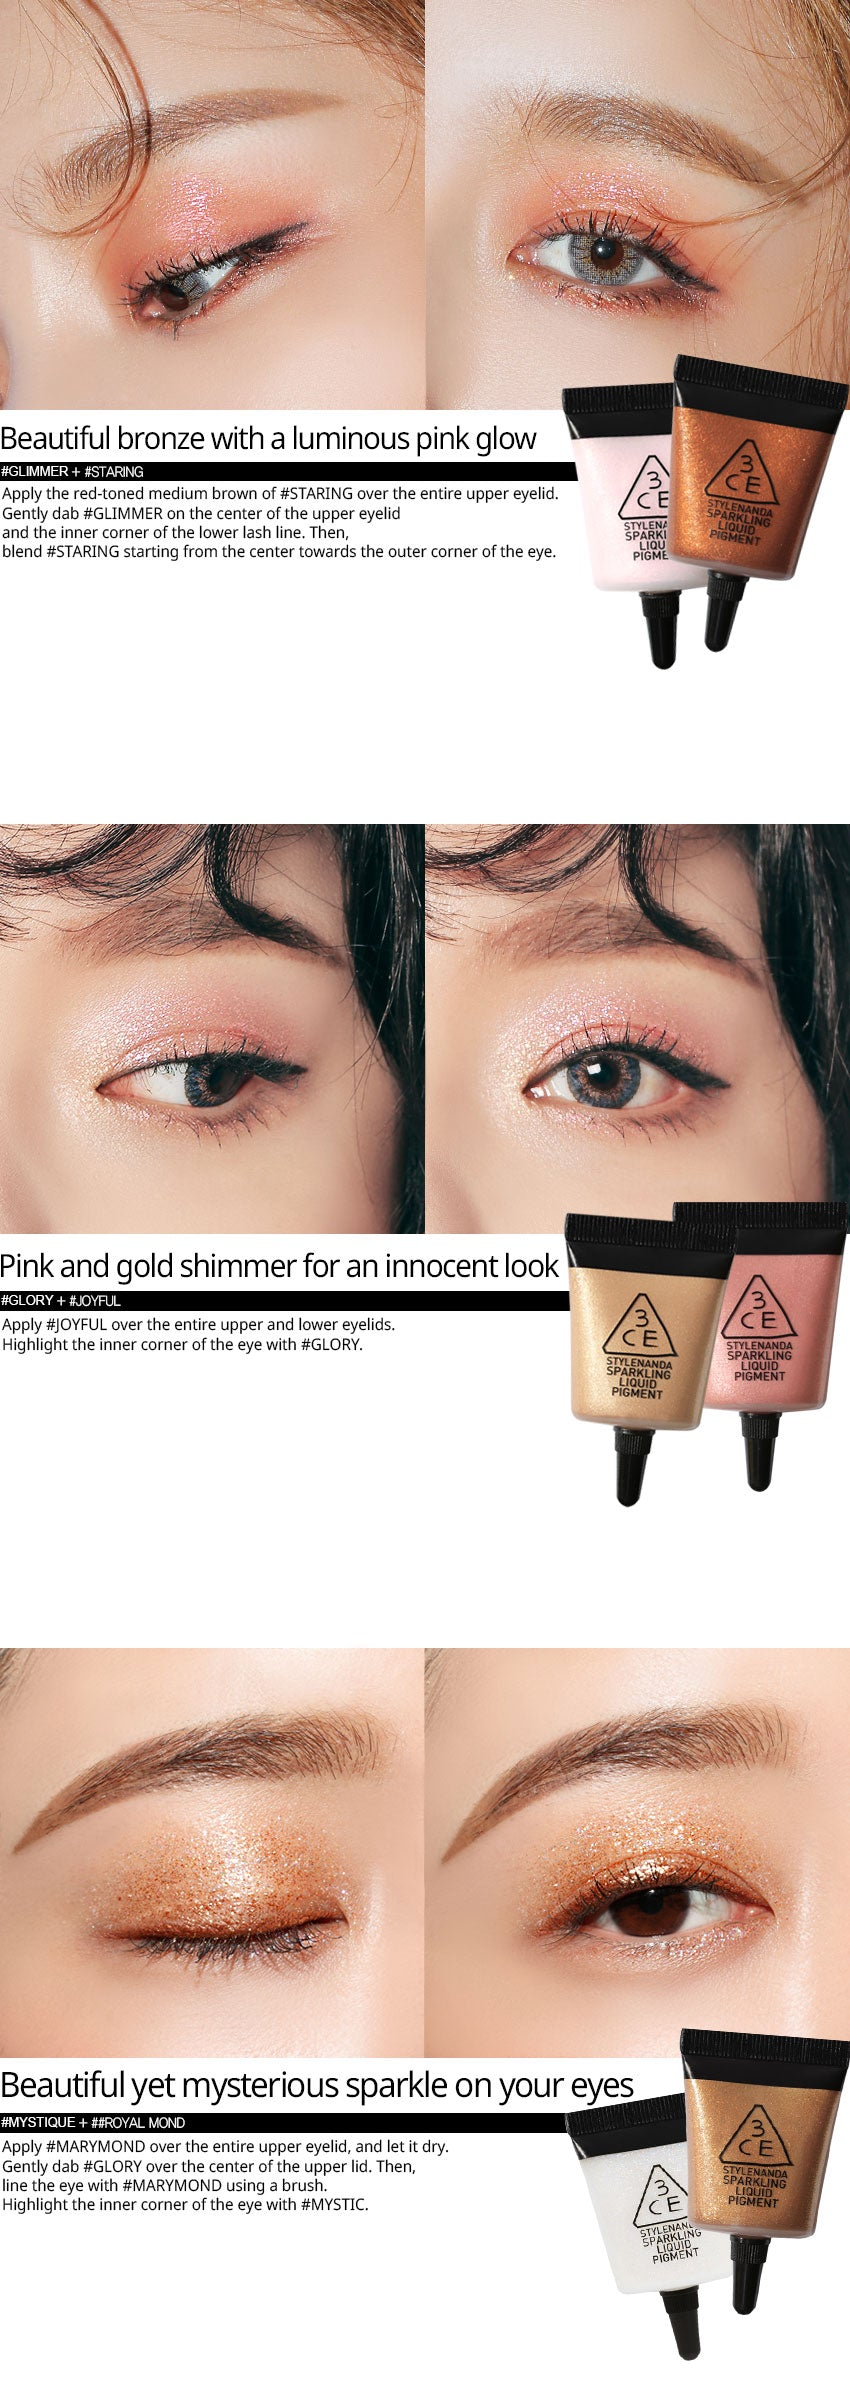 3 Concept Eyes 3ce Sparkling Liquid Pigment Pink Haze Daftar Threeceyes 3ceyes Mini Concealer Cair Highlighter Shading Eye Lips Bibir Blend These Colors Together For Even More Gorgeous Looks Add An Instant Touch Of Freshness